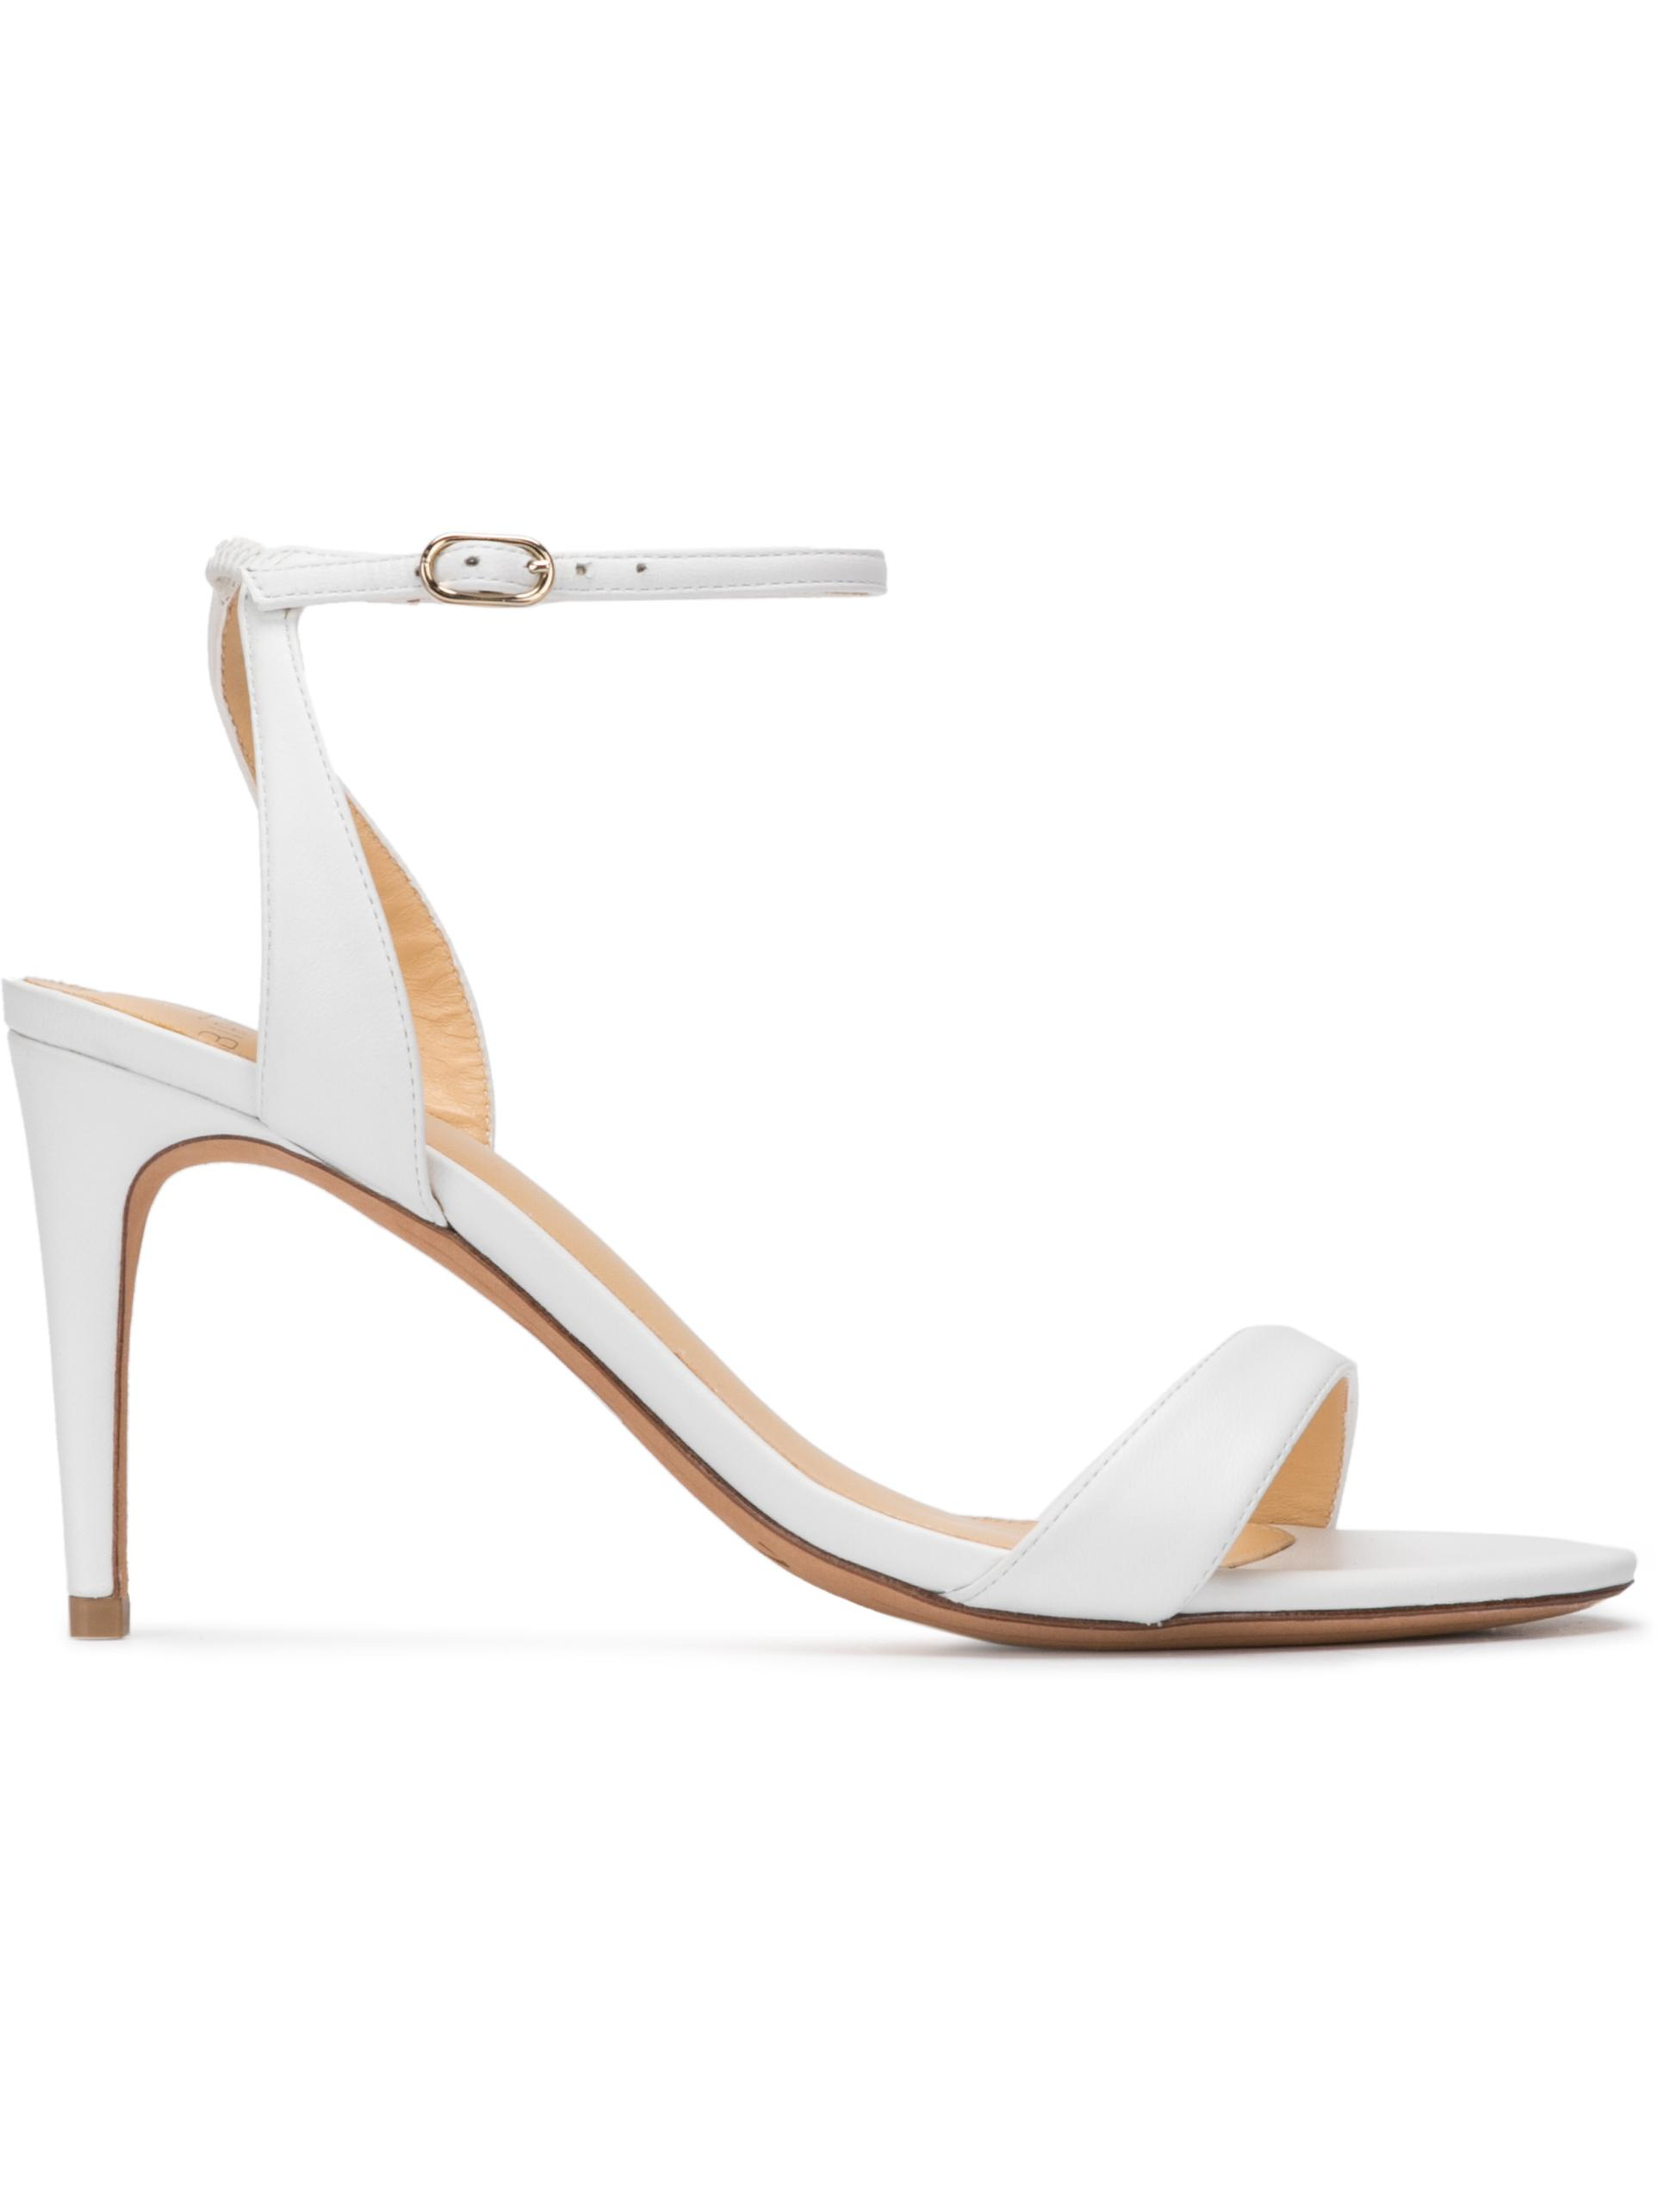 Willow 75mm Leather Ankle Strap Sandal Item # B0018781380012